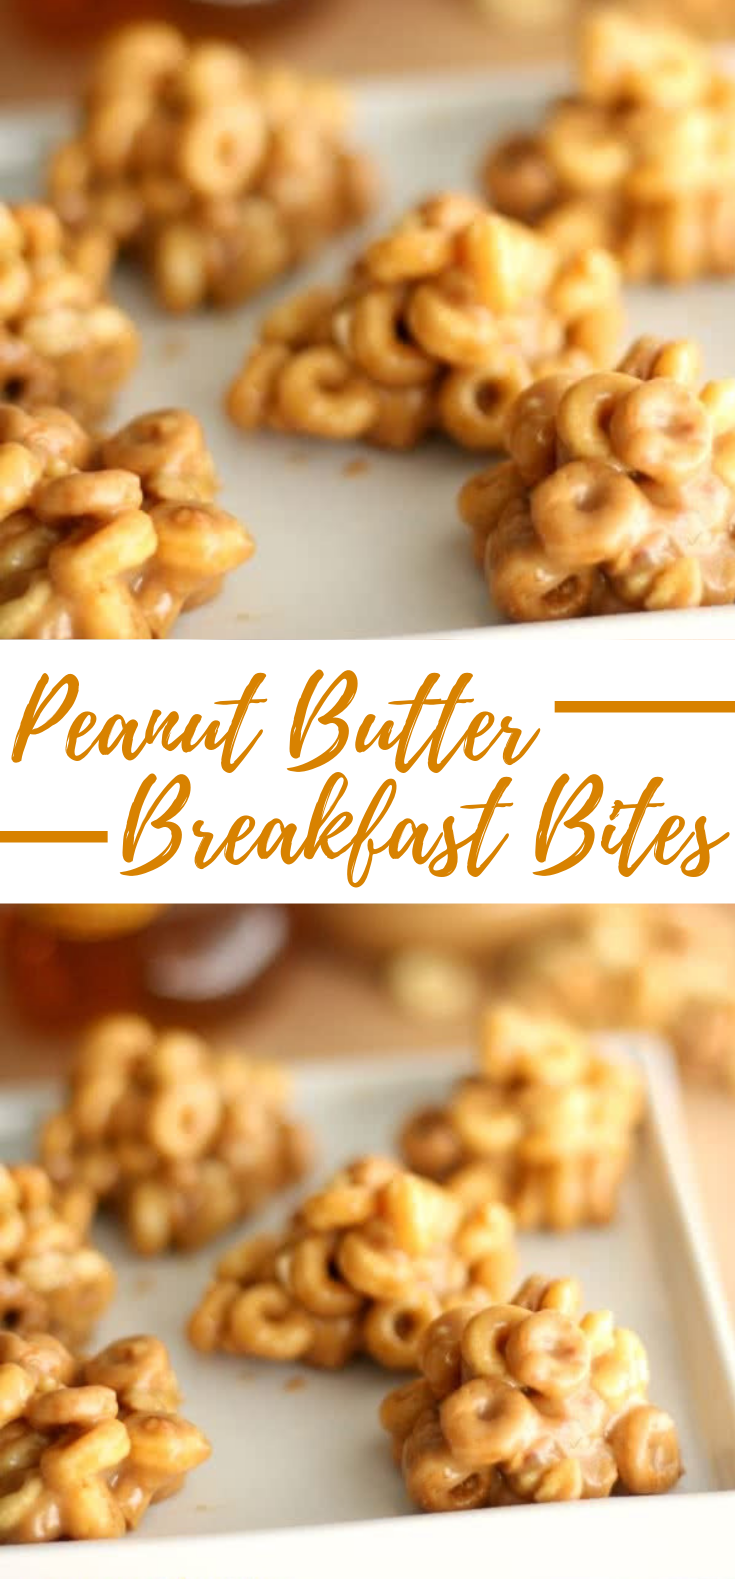 PEANUT BUTTER BREAKFAST BITES #dessert #snacks